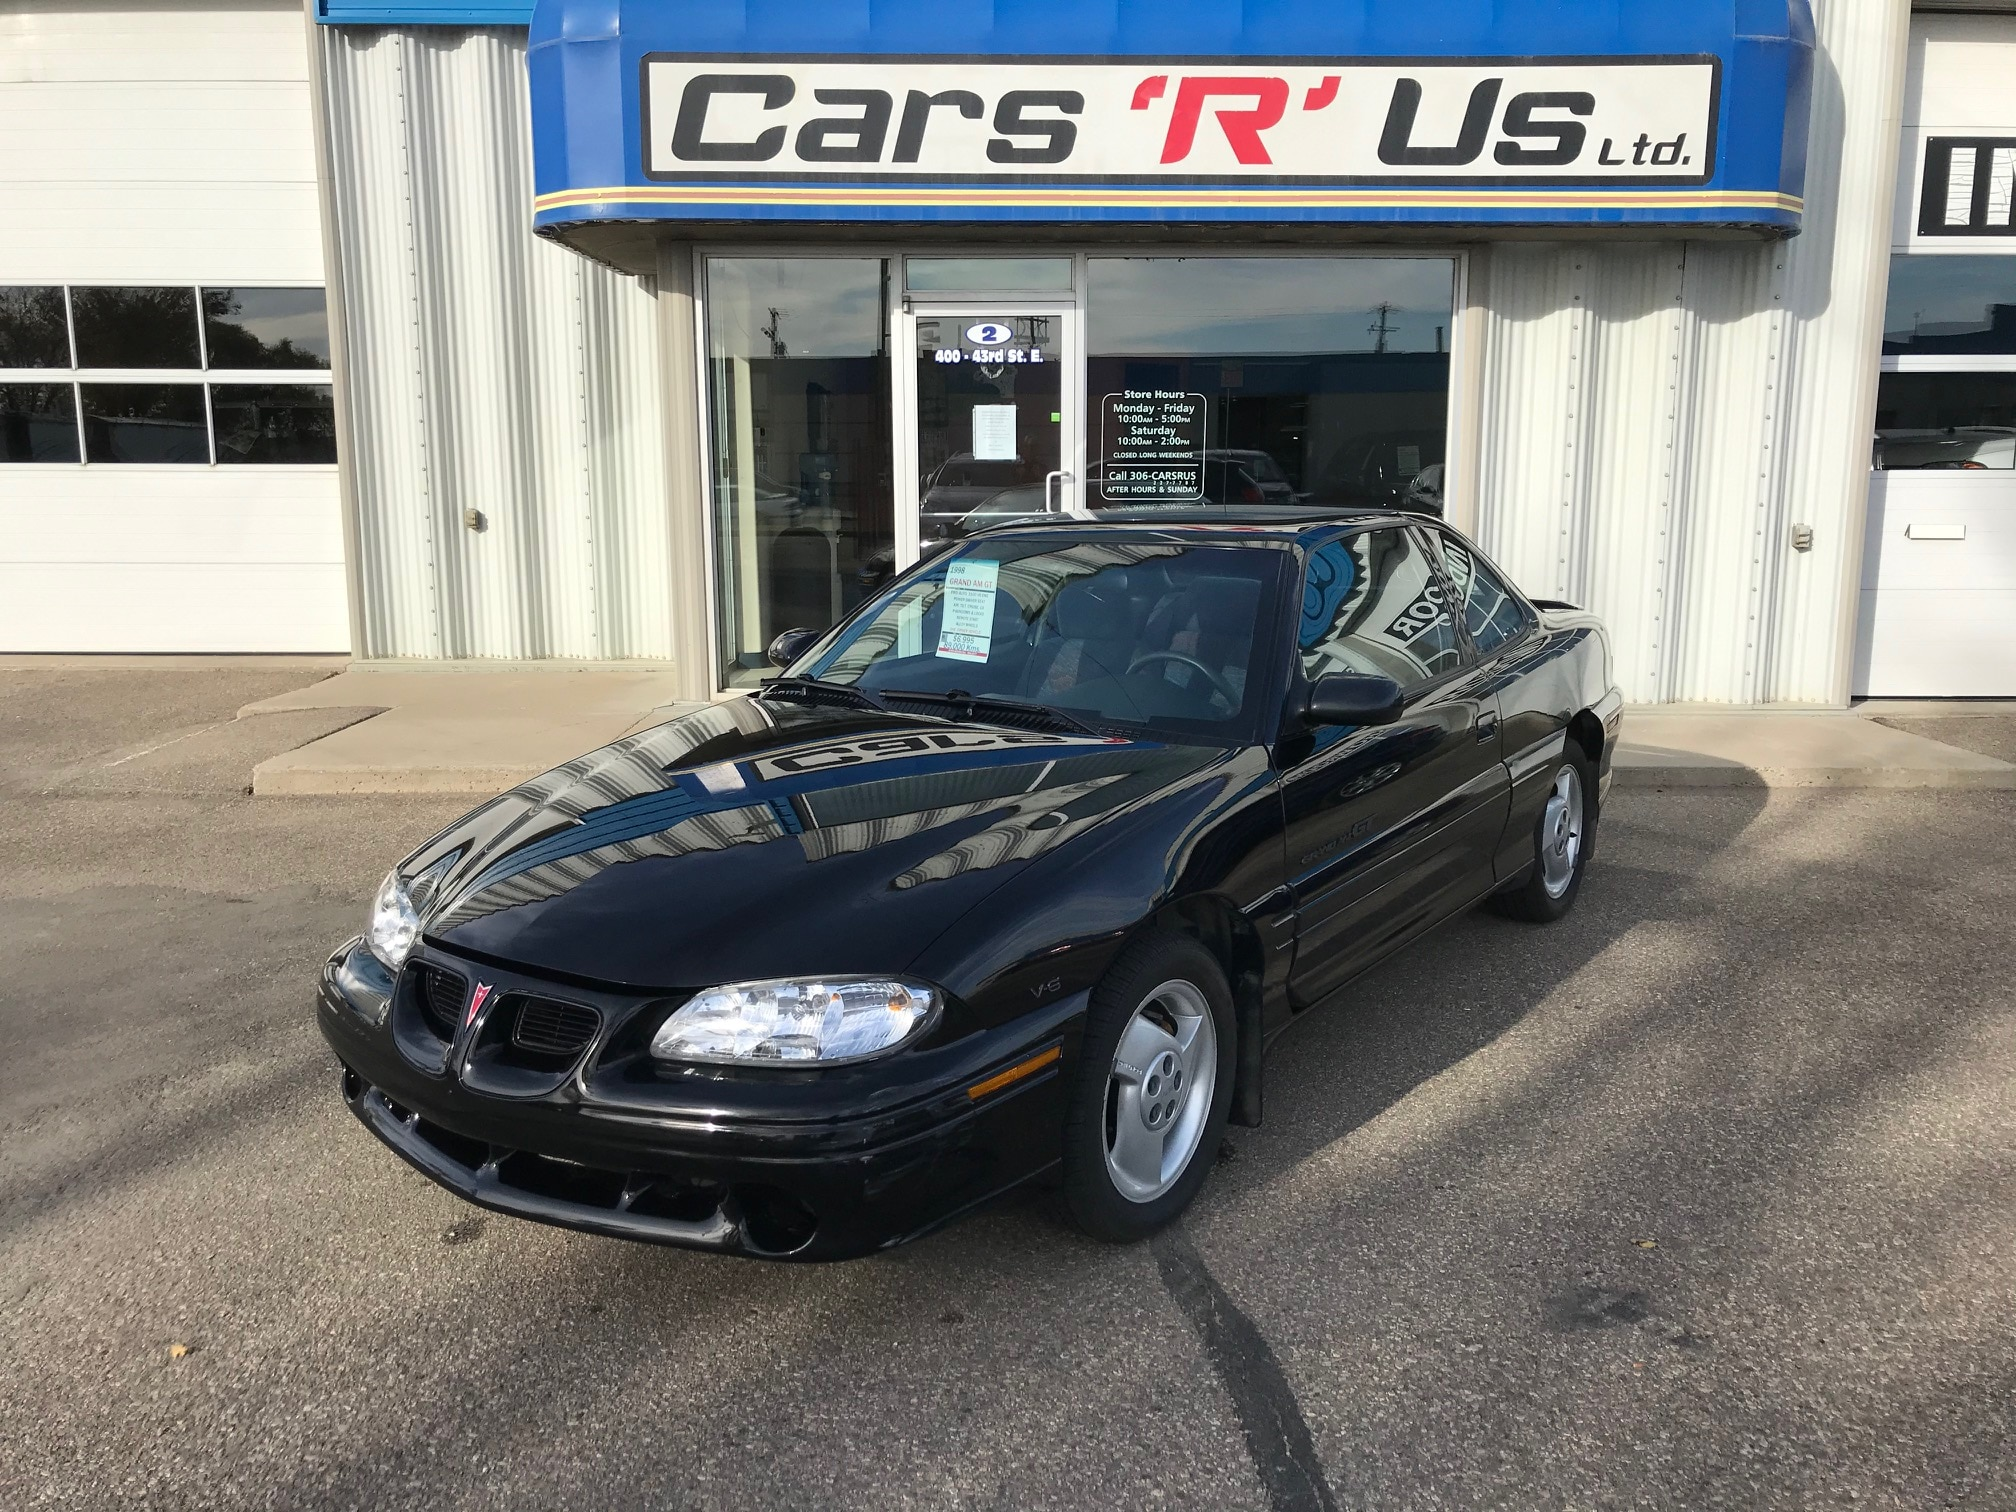 Used 1998 Pontiac Grand Am For Sale At Cars R Us Ltd Vin 1g2nw12m6wc704032